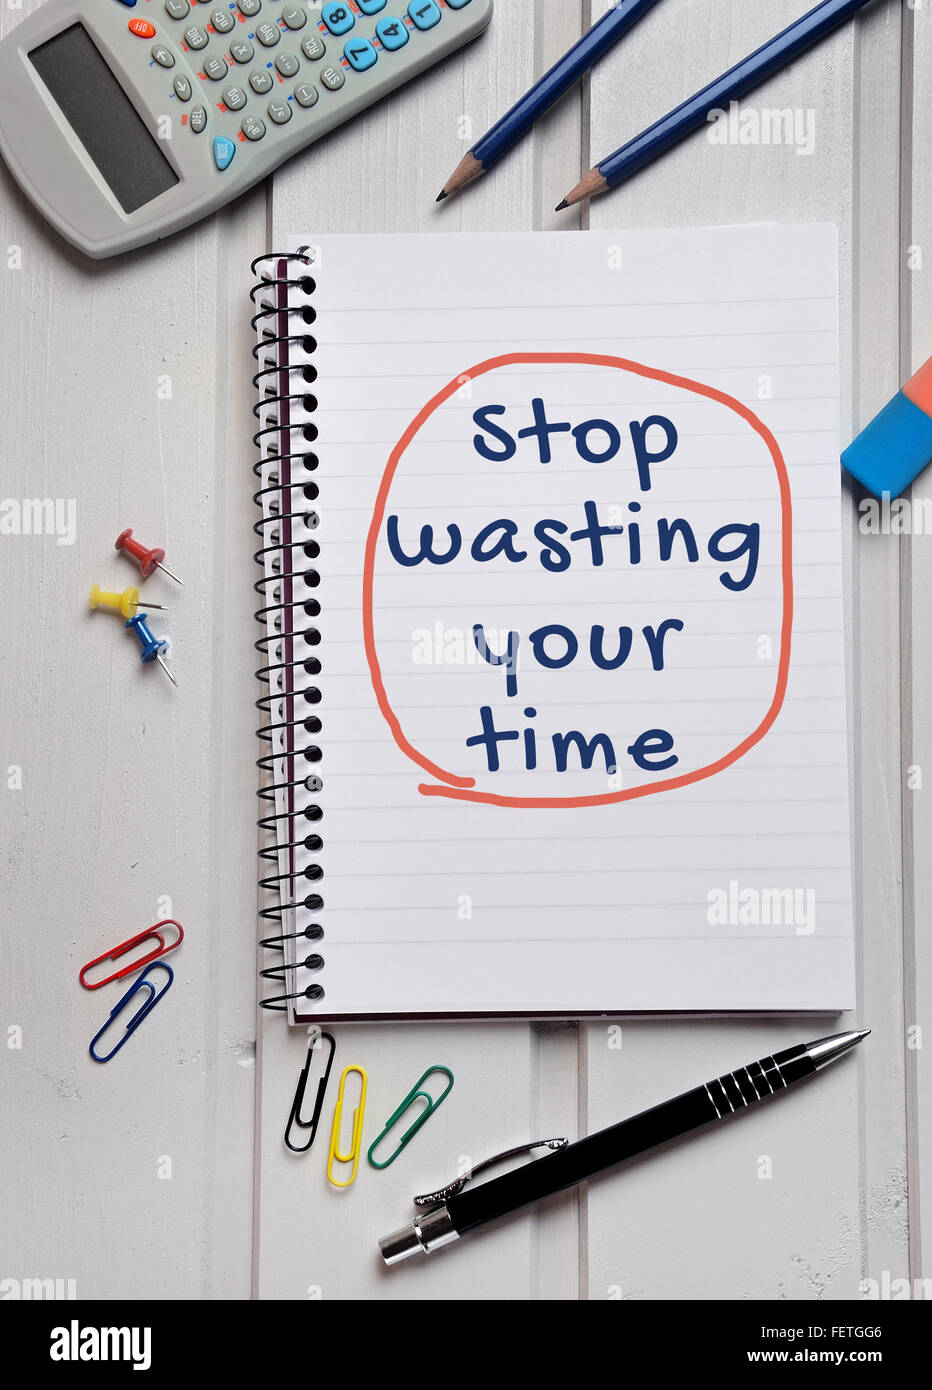 Stop wasting your time word writing on paper - Stock Image